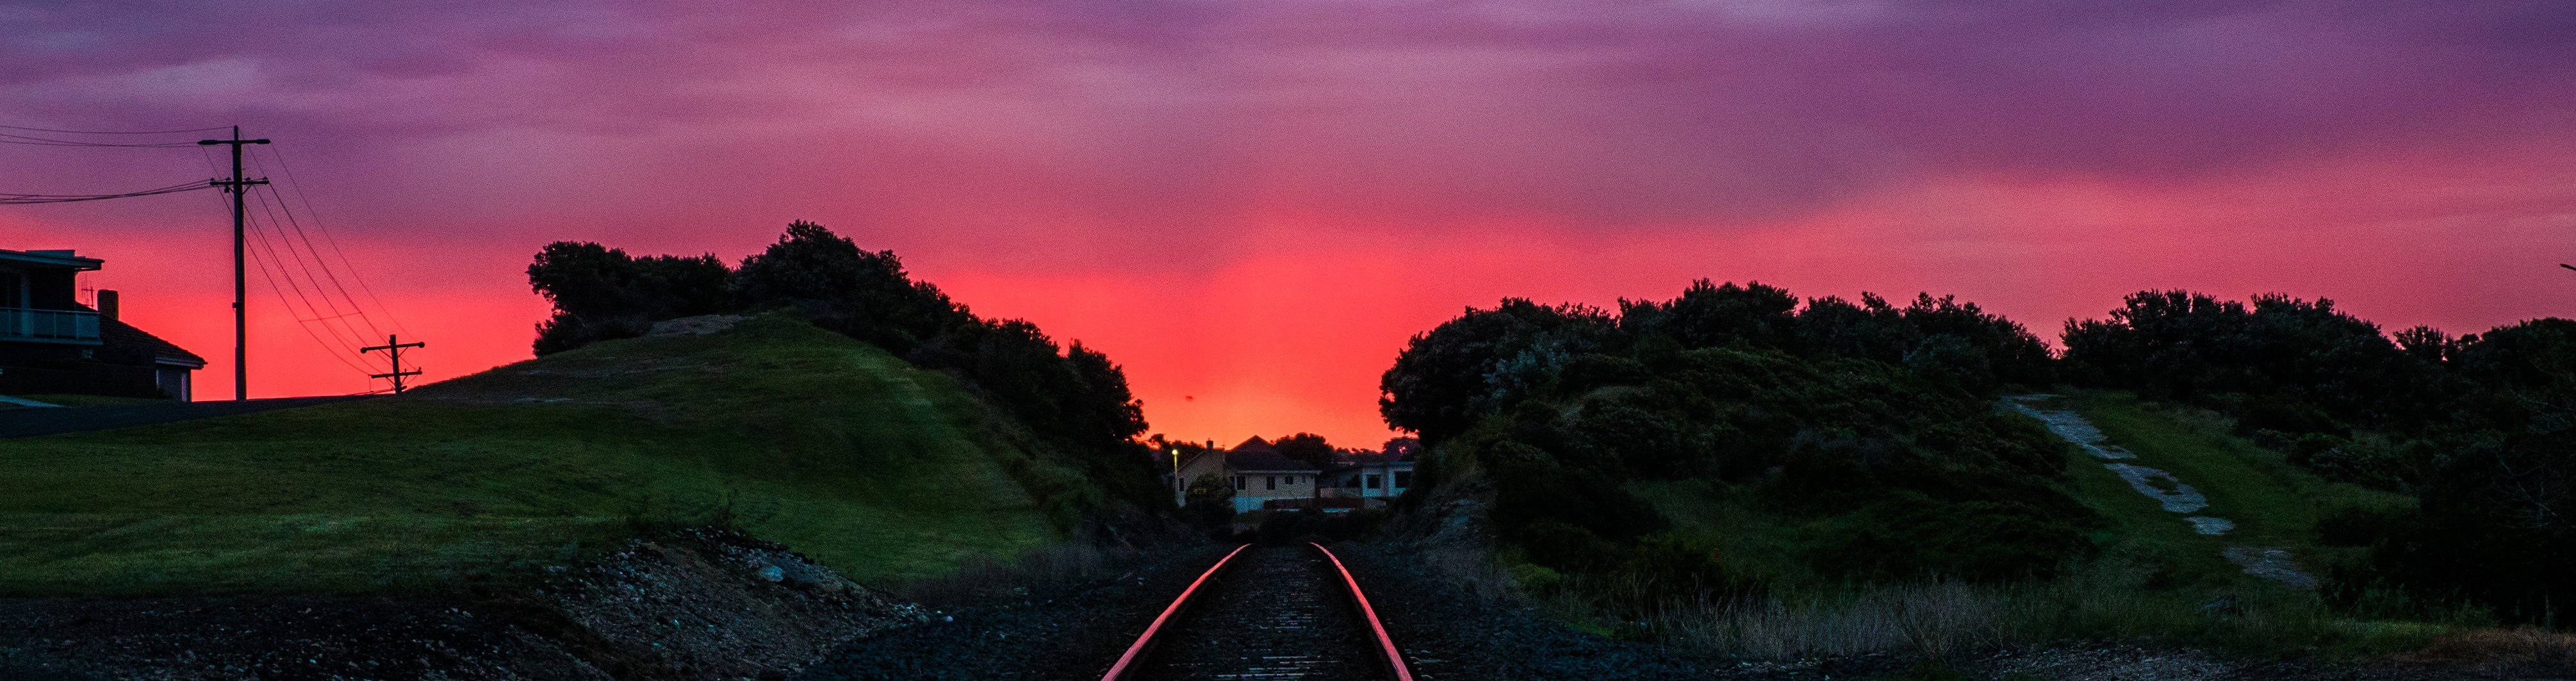 Red sky over Warrnambool